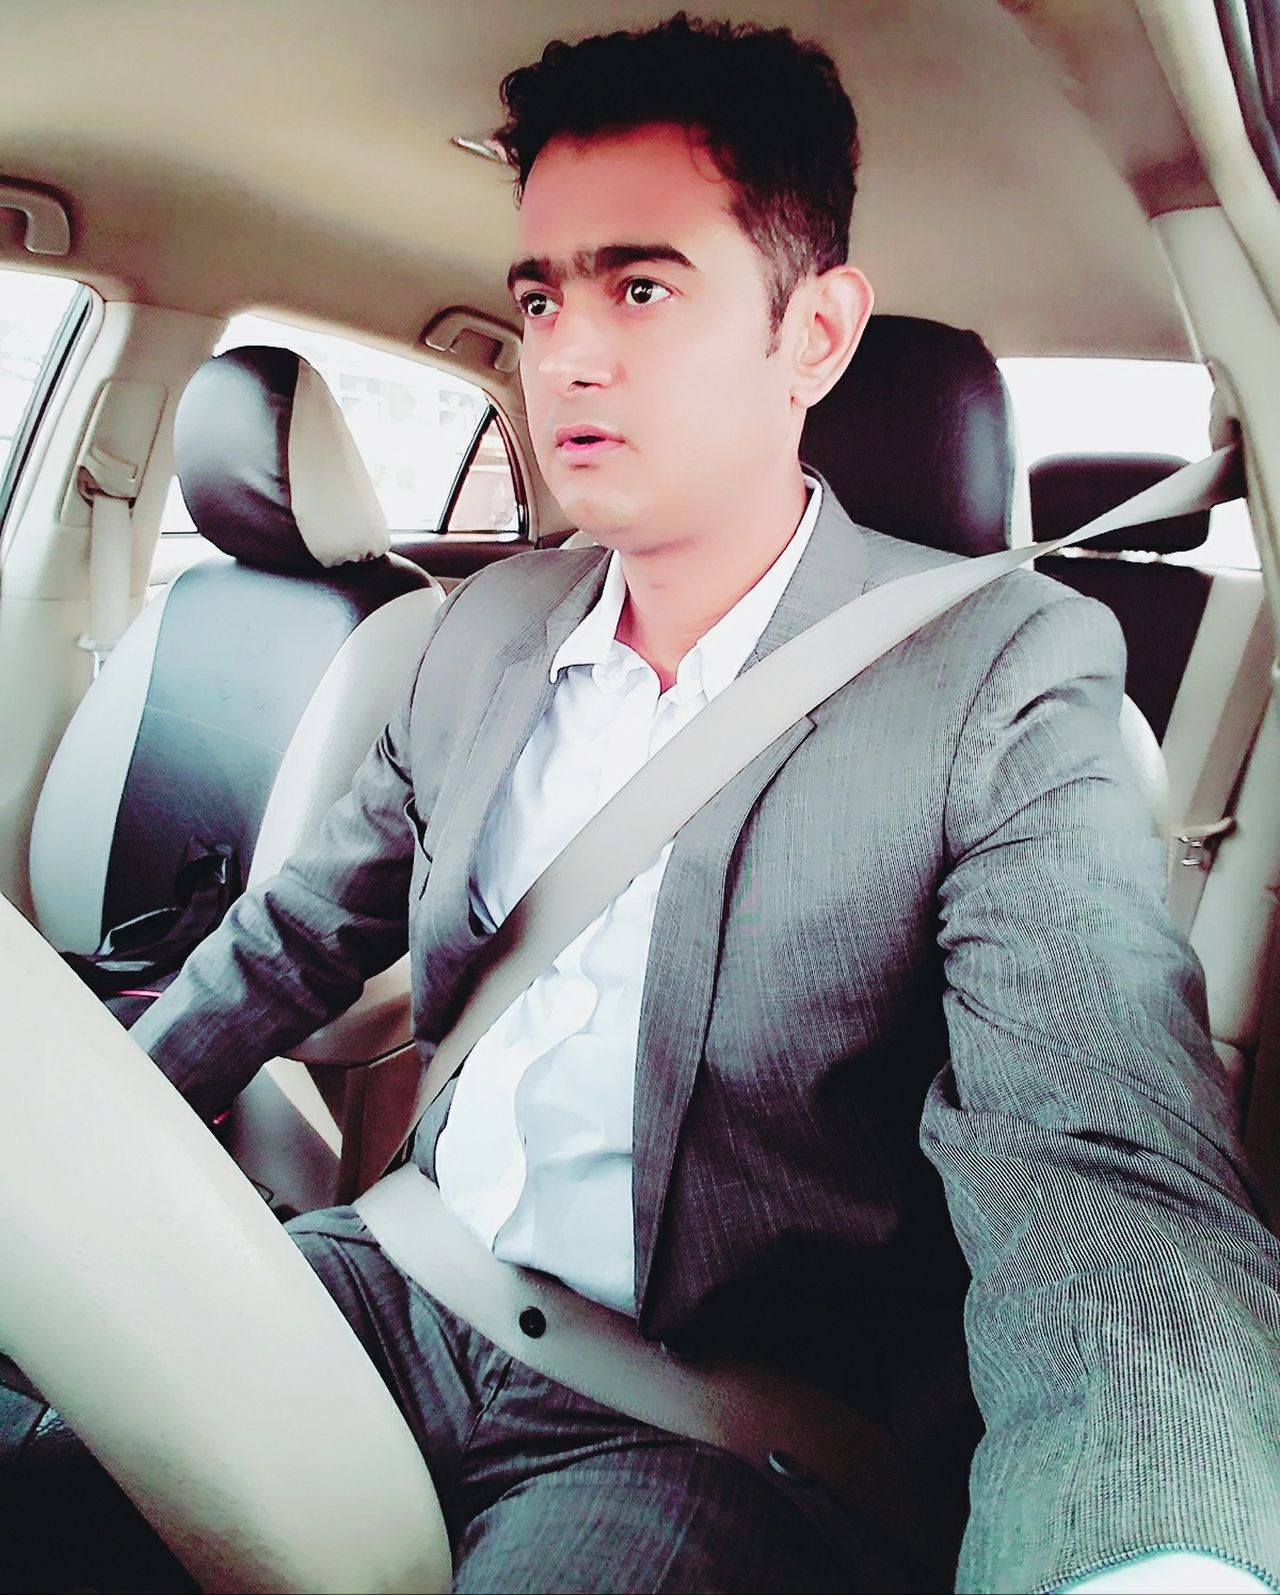 One Person Adult One Man Only Transportation Driving To Work Men Confidence  Sitting Day HERO ThatsMe Man That's Me Hello World Check This Out Cool Its Me Hi Today's Hot Look Lifestyles Pakistan Karachi Business Well-dressed